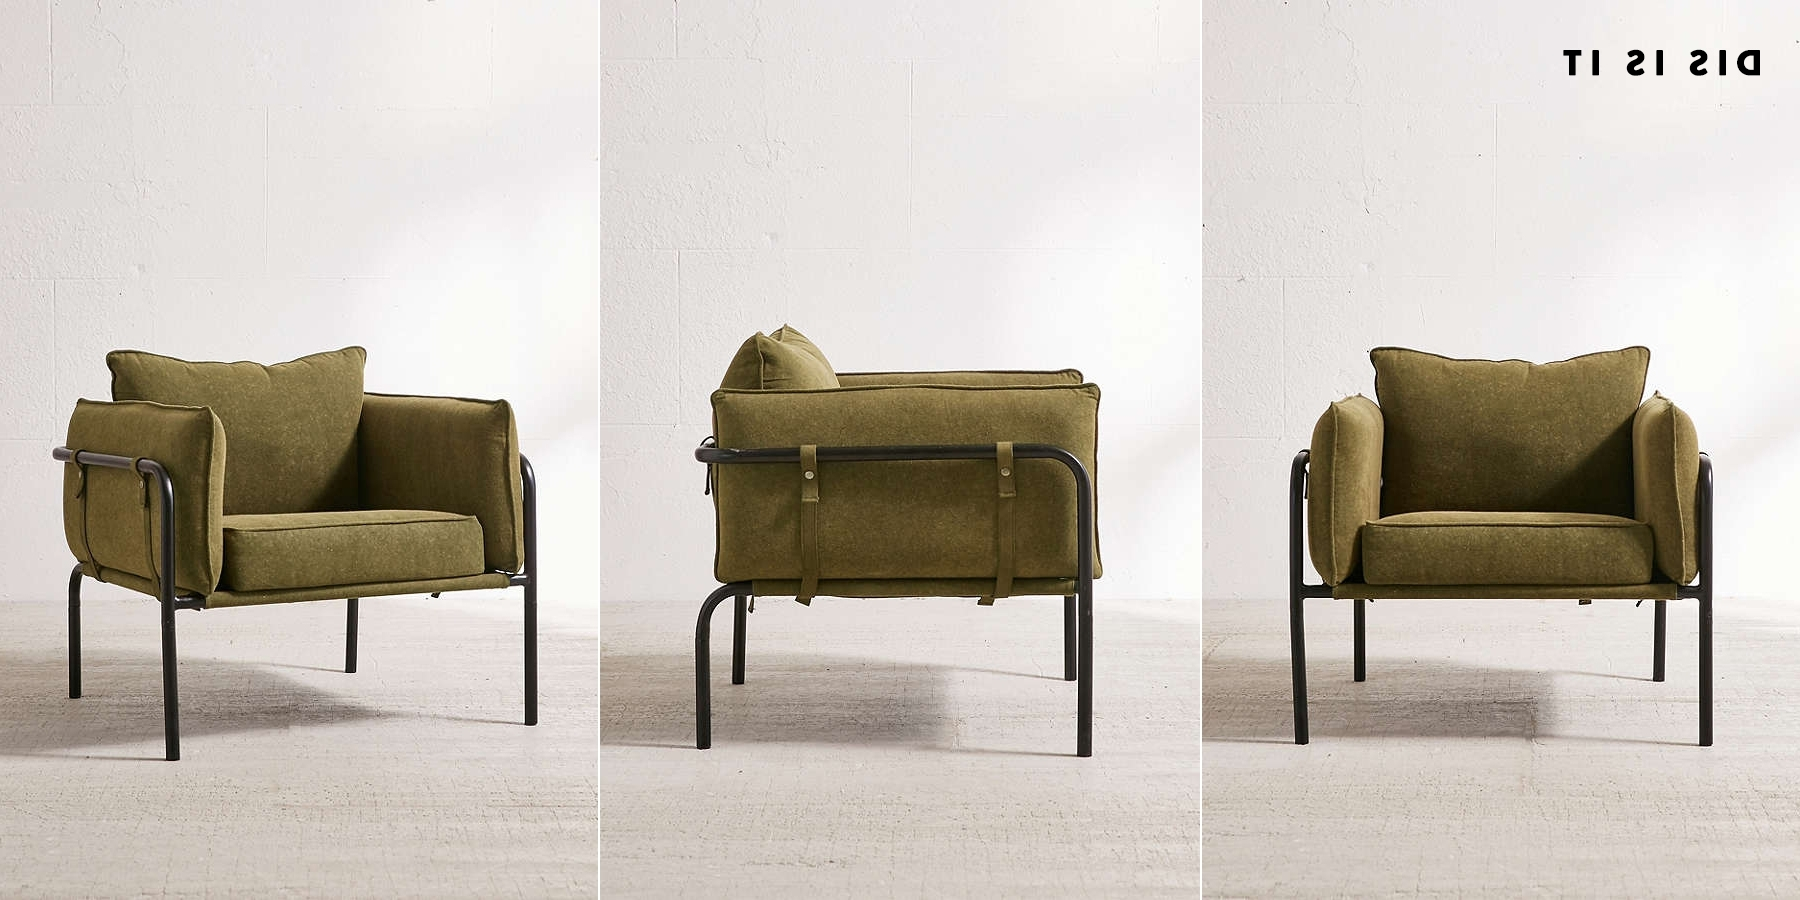 Most Recently Released Green Sofa Chairs In Army Green Chairs For The Fireplace (View 10 of 20)